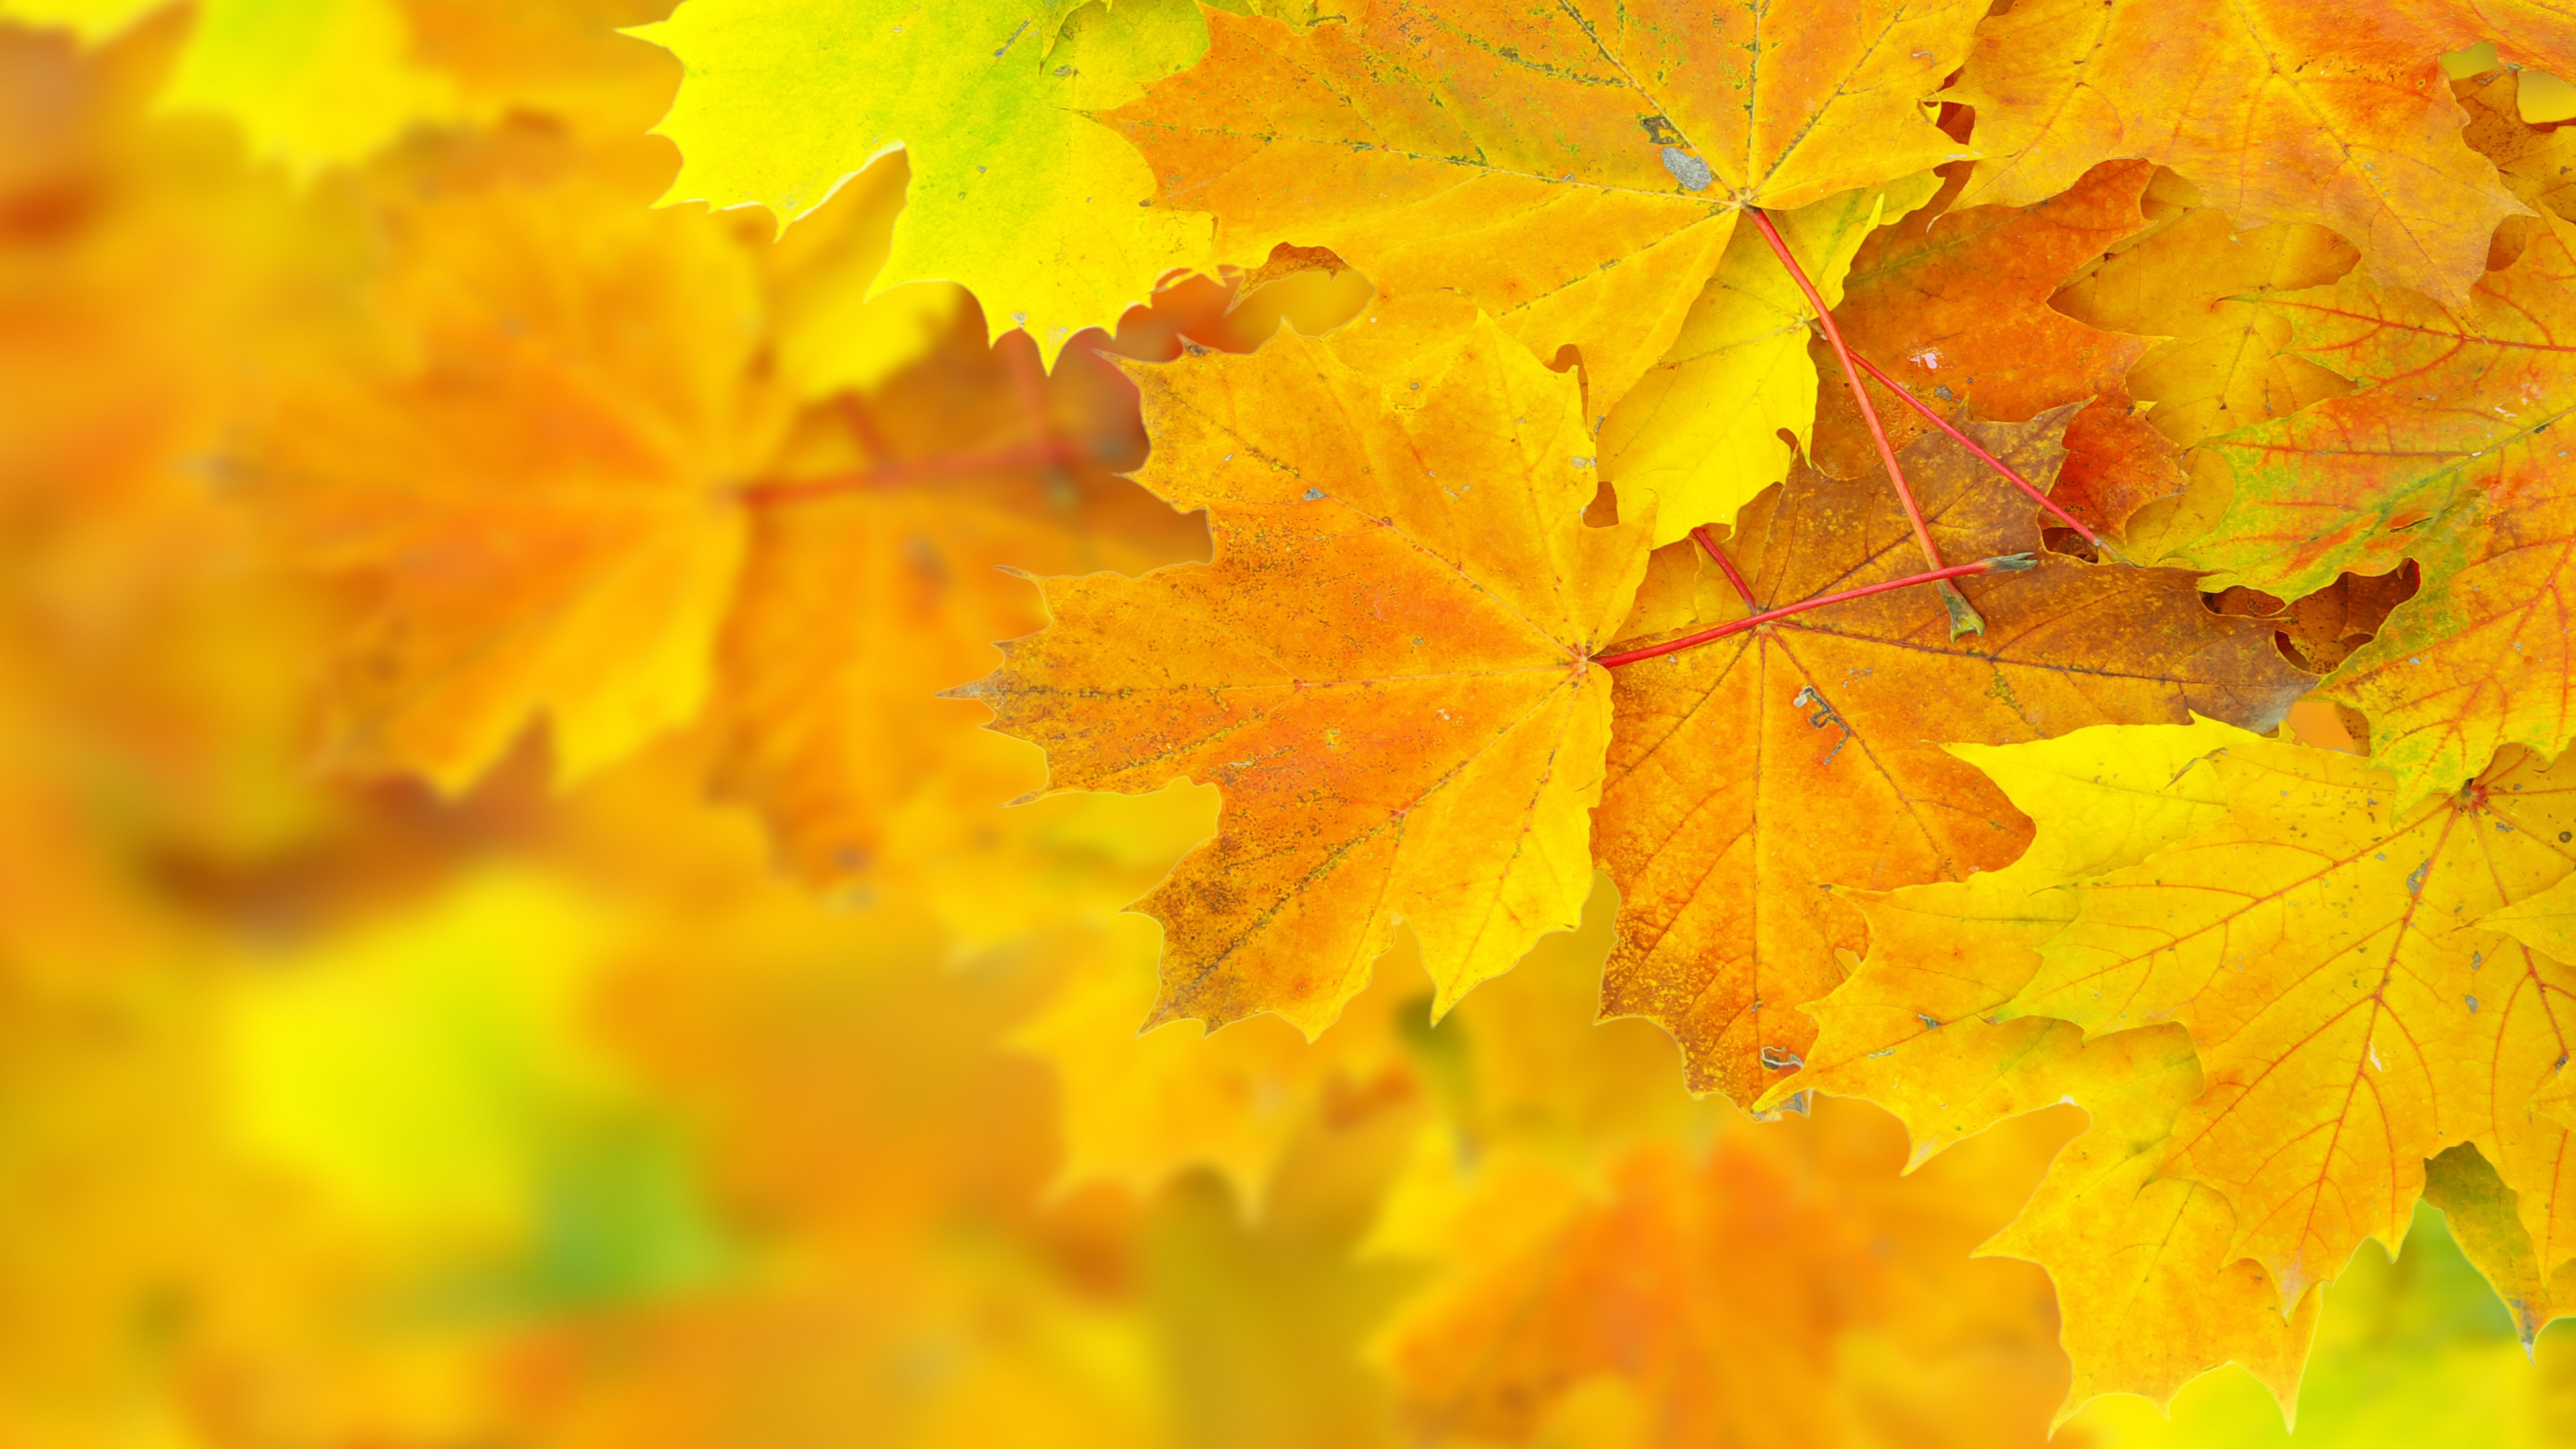 Wallpaper Leaves 5k 4k Wallpaper 8k Maple Macro